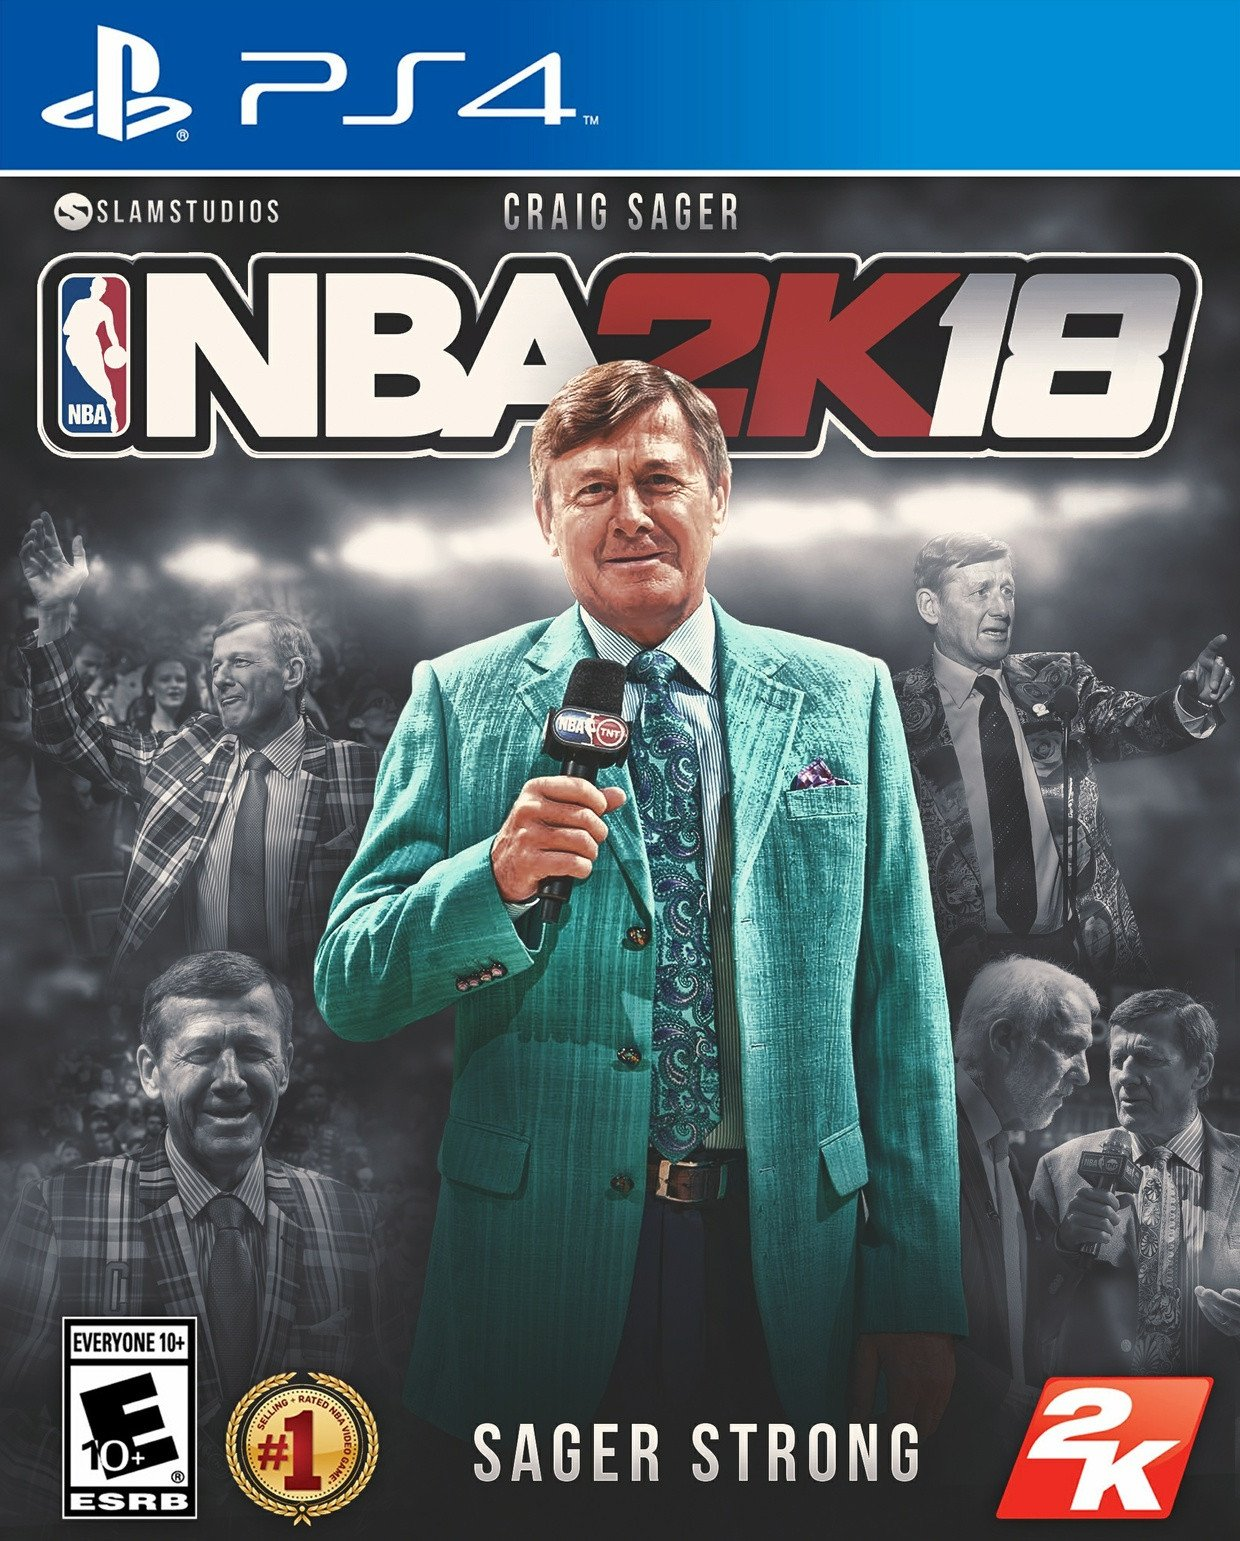 Nba 2k18 Cover Template Craig Sager Nba 2k18 Cover Psd